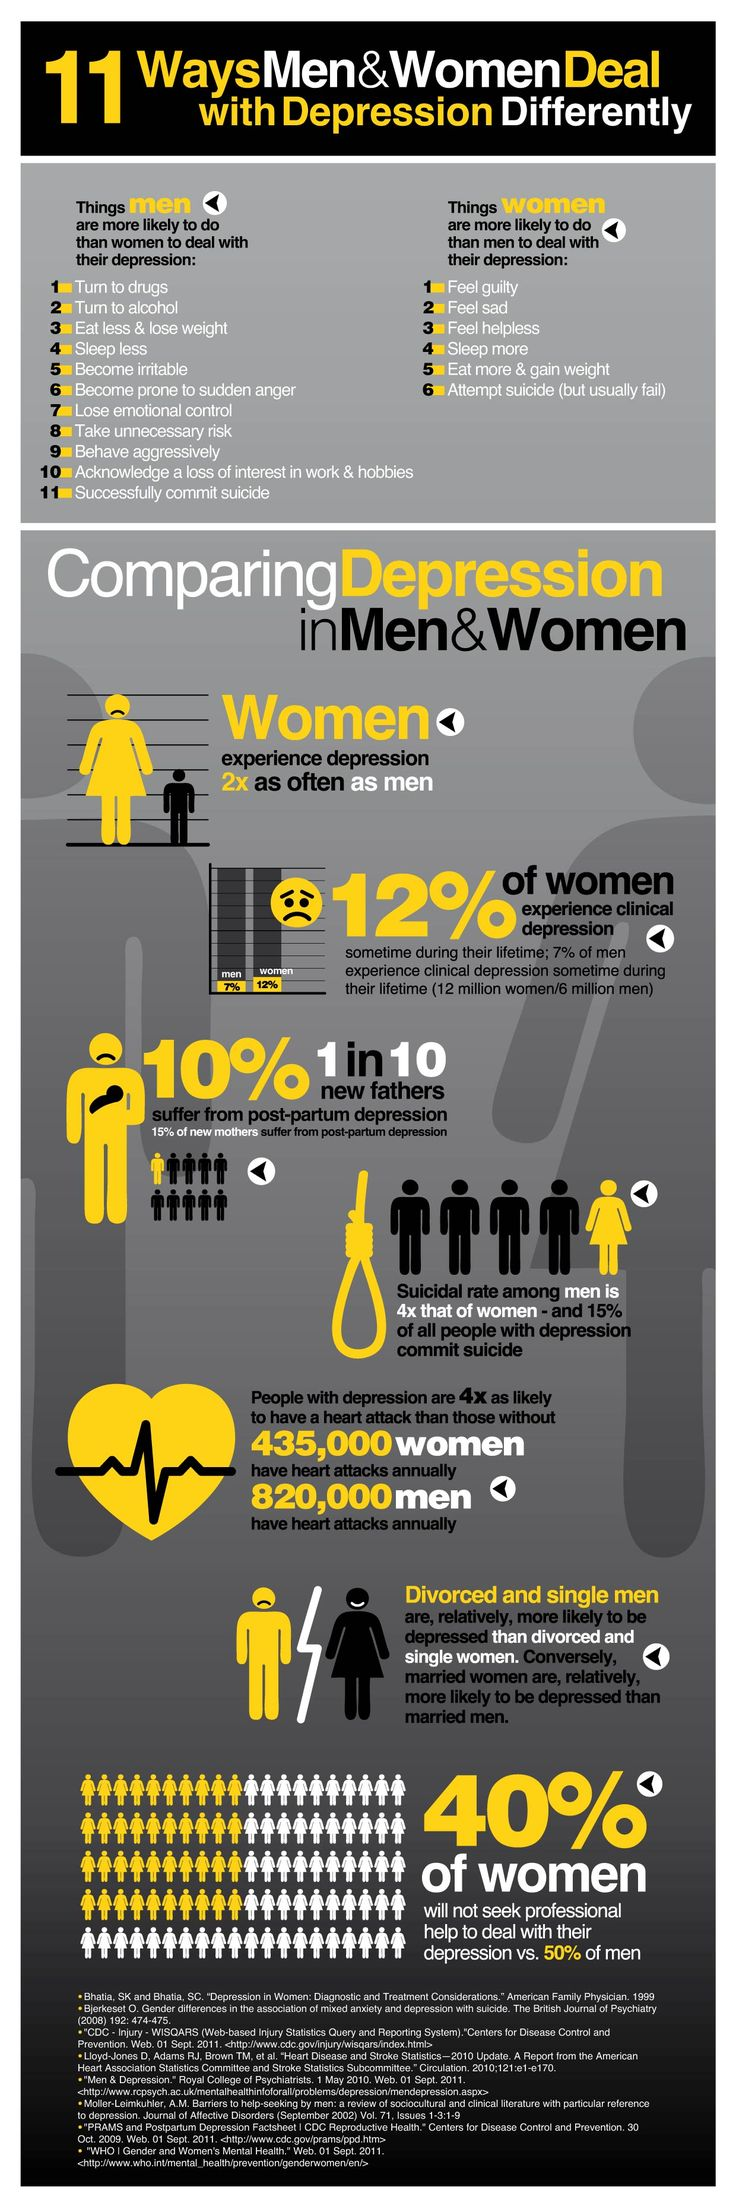 11 Ways Men and Women Deal with Depression Differently Infographic